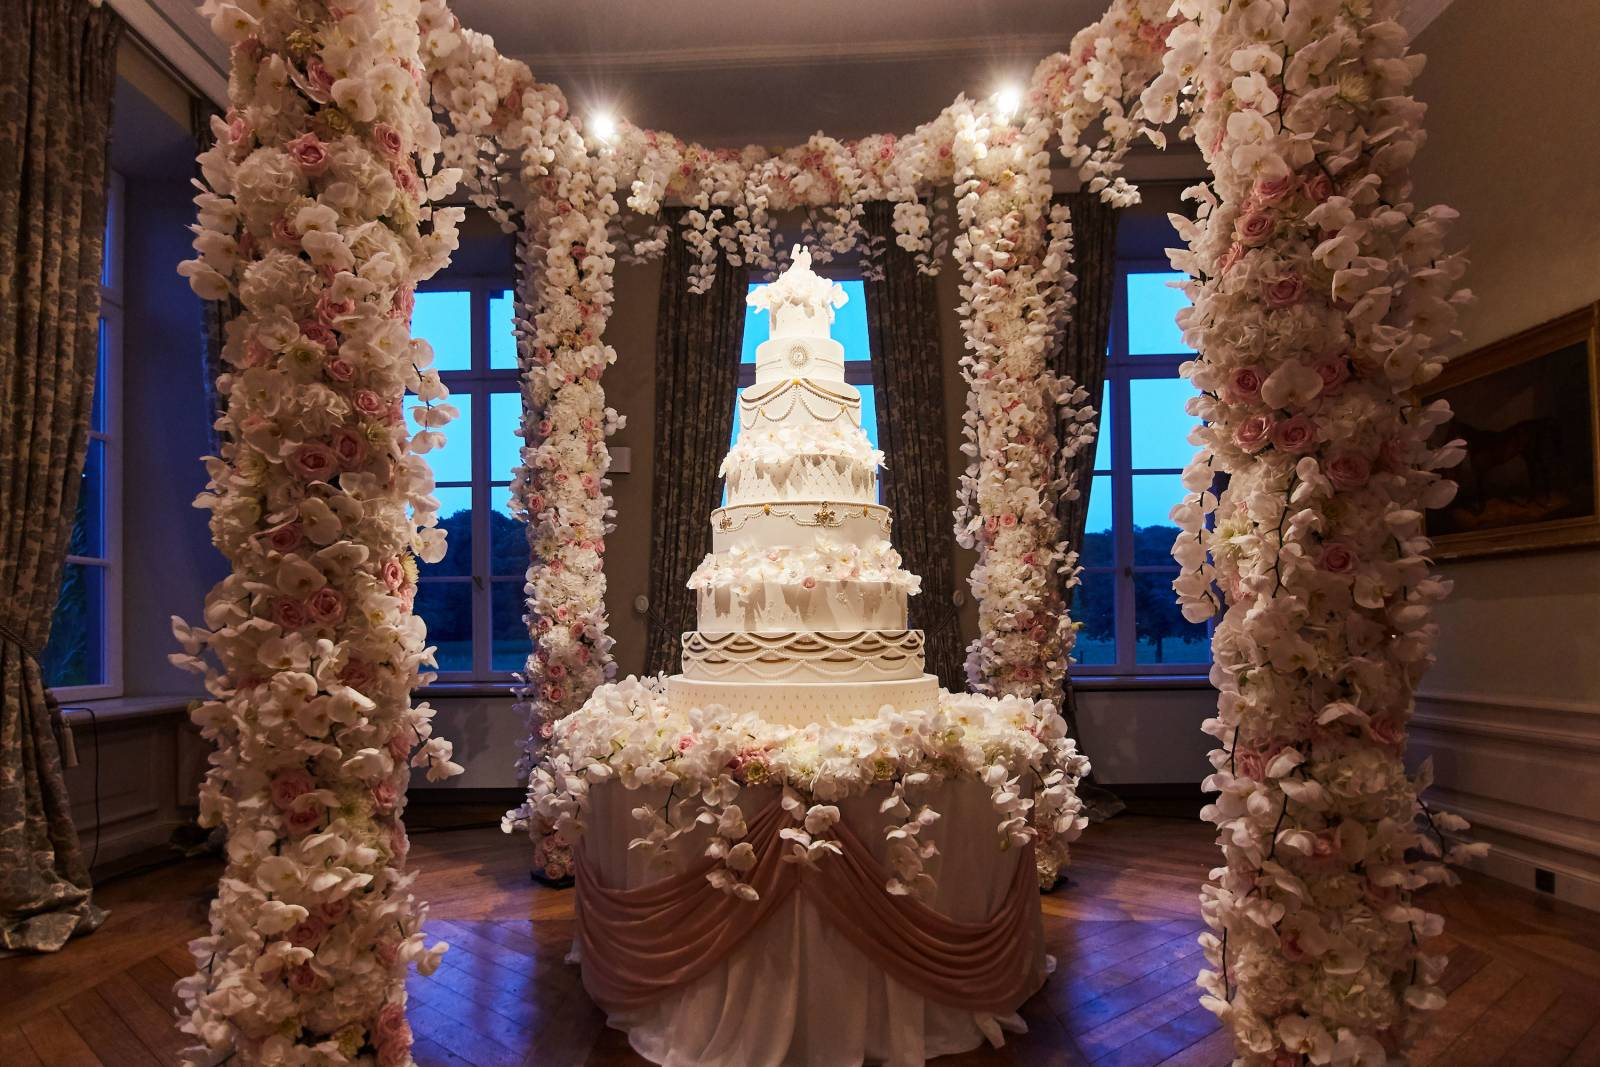 Be Your Guest - Wedding Planner - House of Weddings02-WEDDING CAKE-2018-Philippe Nieus